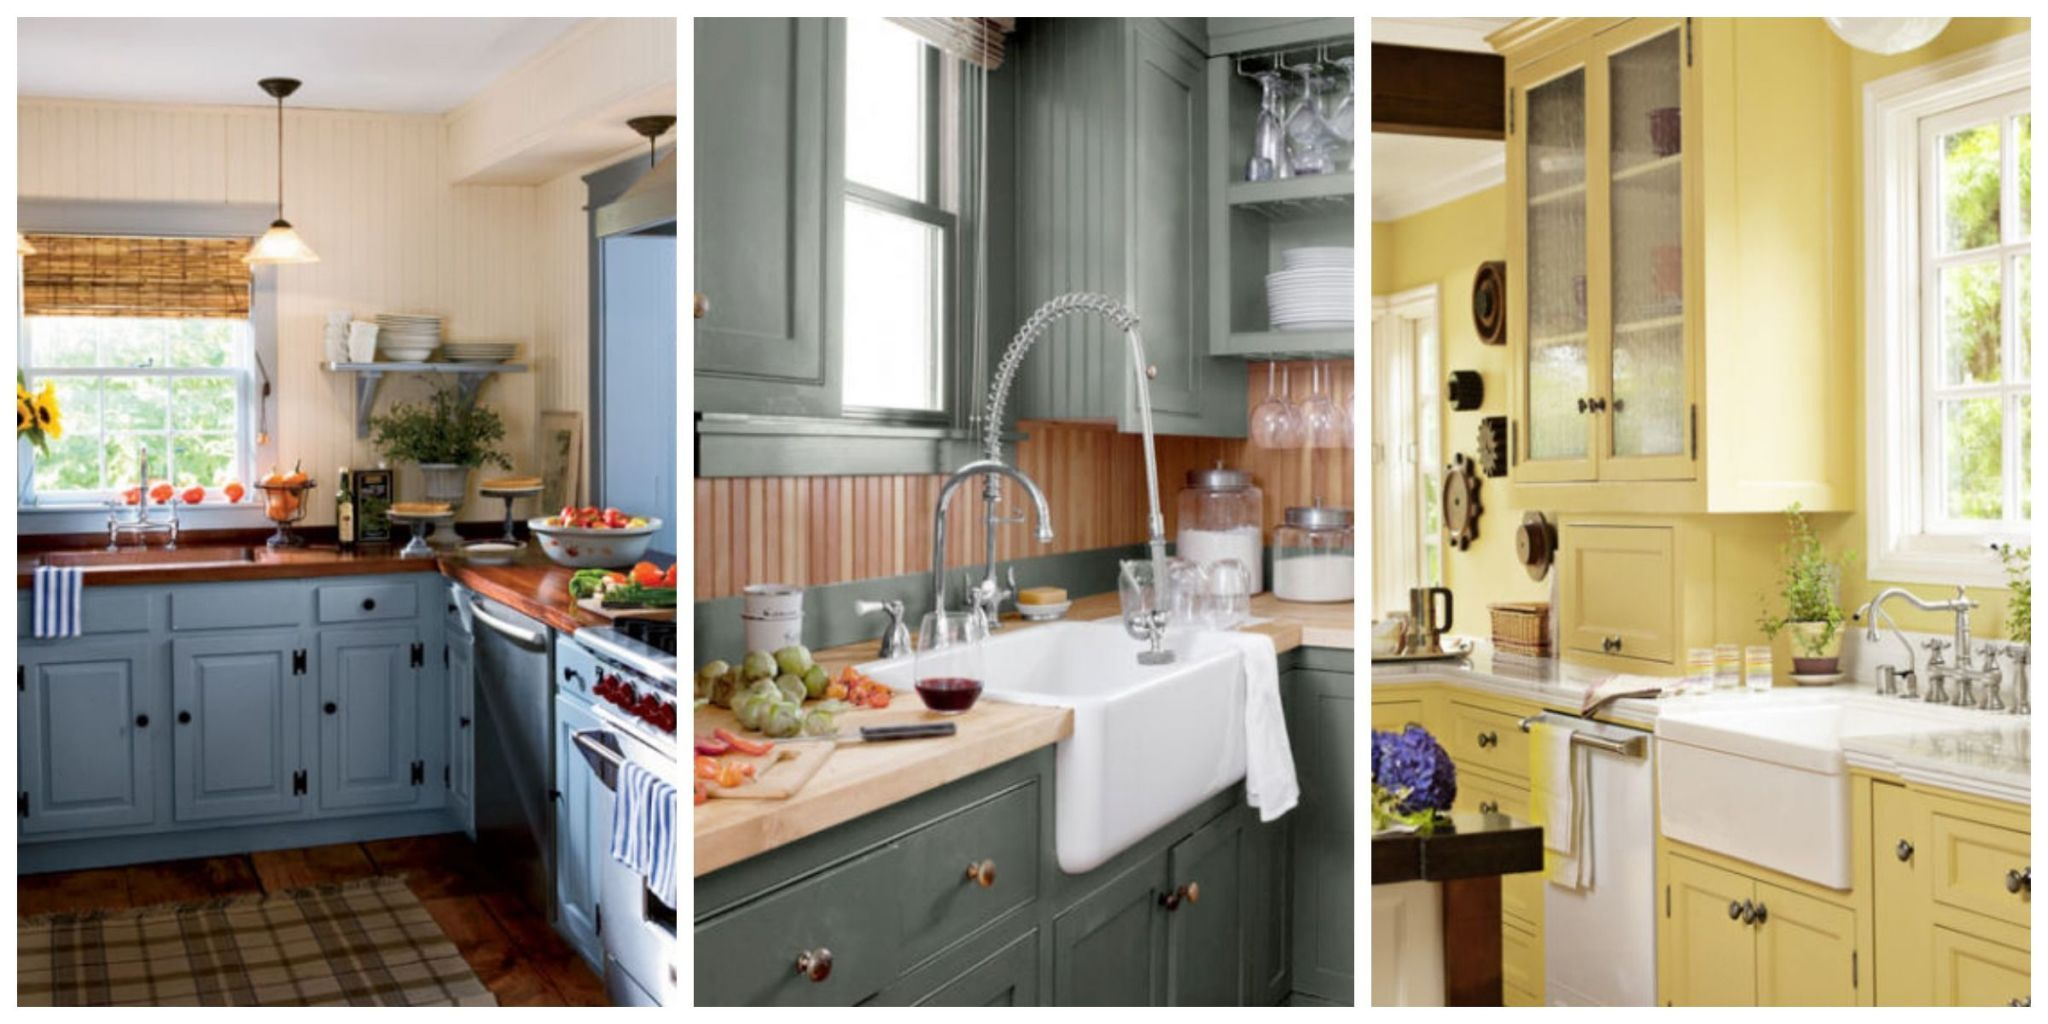 Genial Create A Beautiful And Colorful Kitchen With These Paint And Decorating  Ideas. Also, Check Out These 100+ Kitchen Design Ideas For More Inspiration.